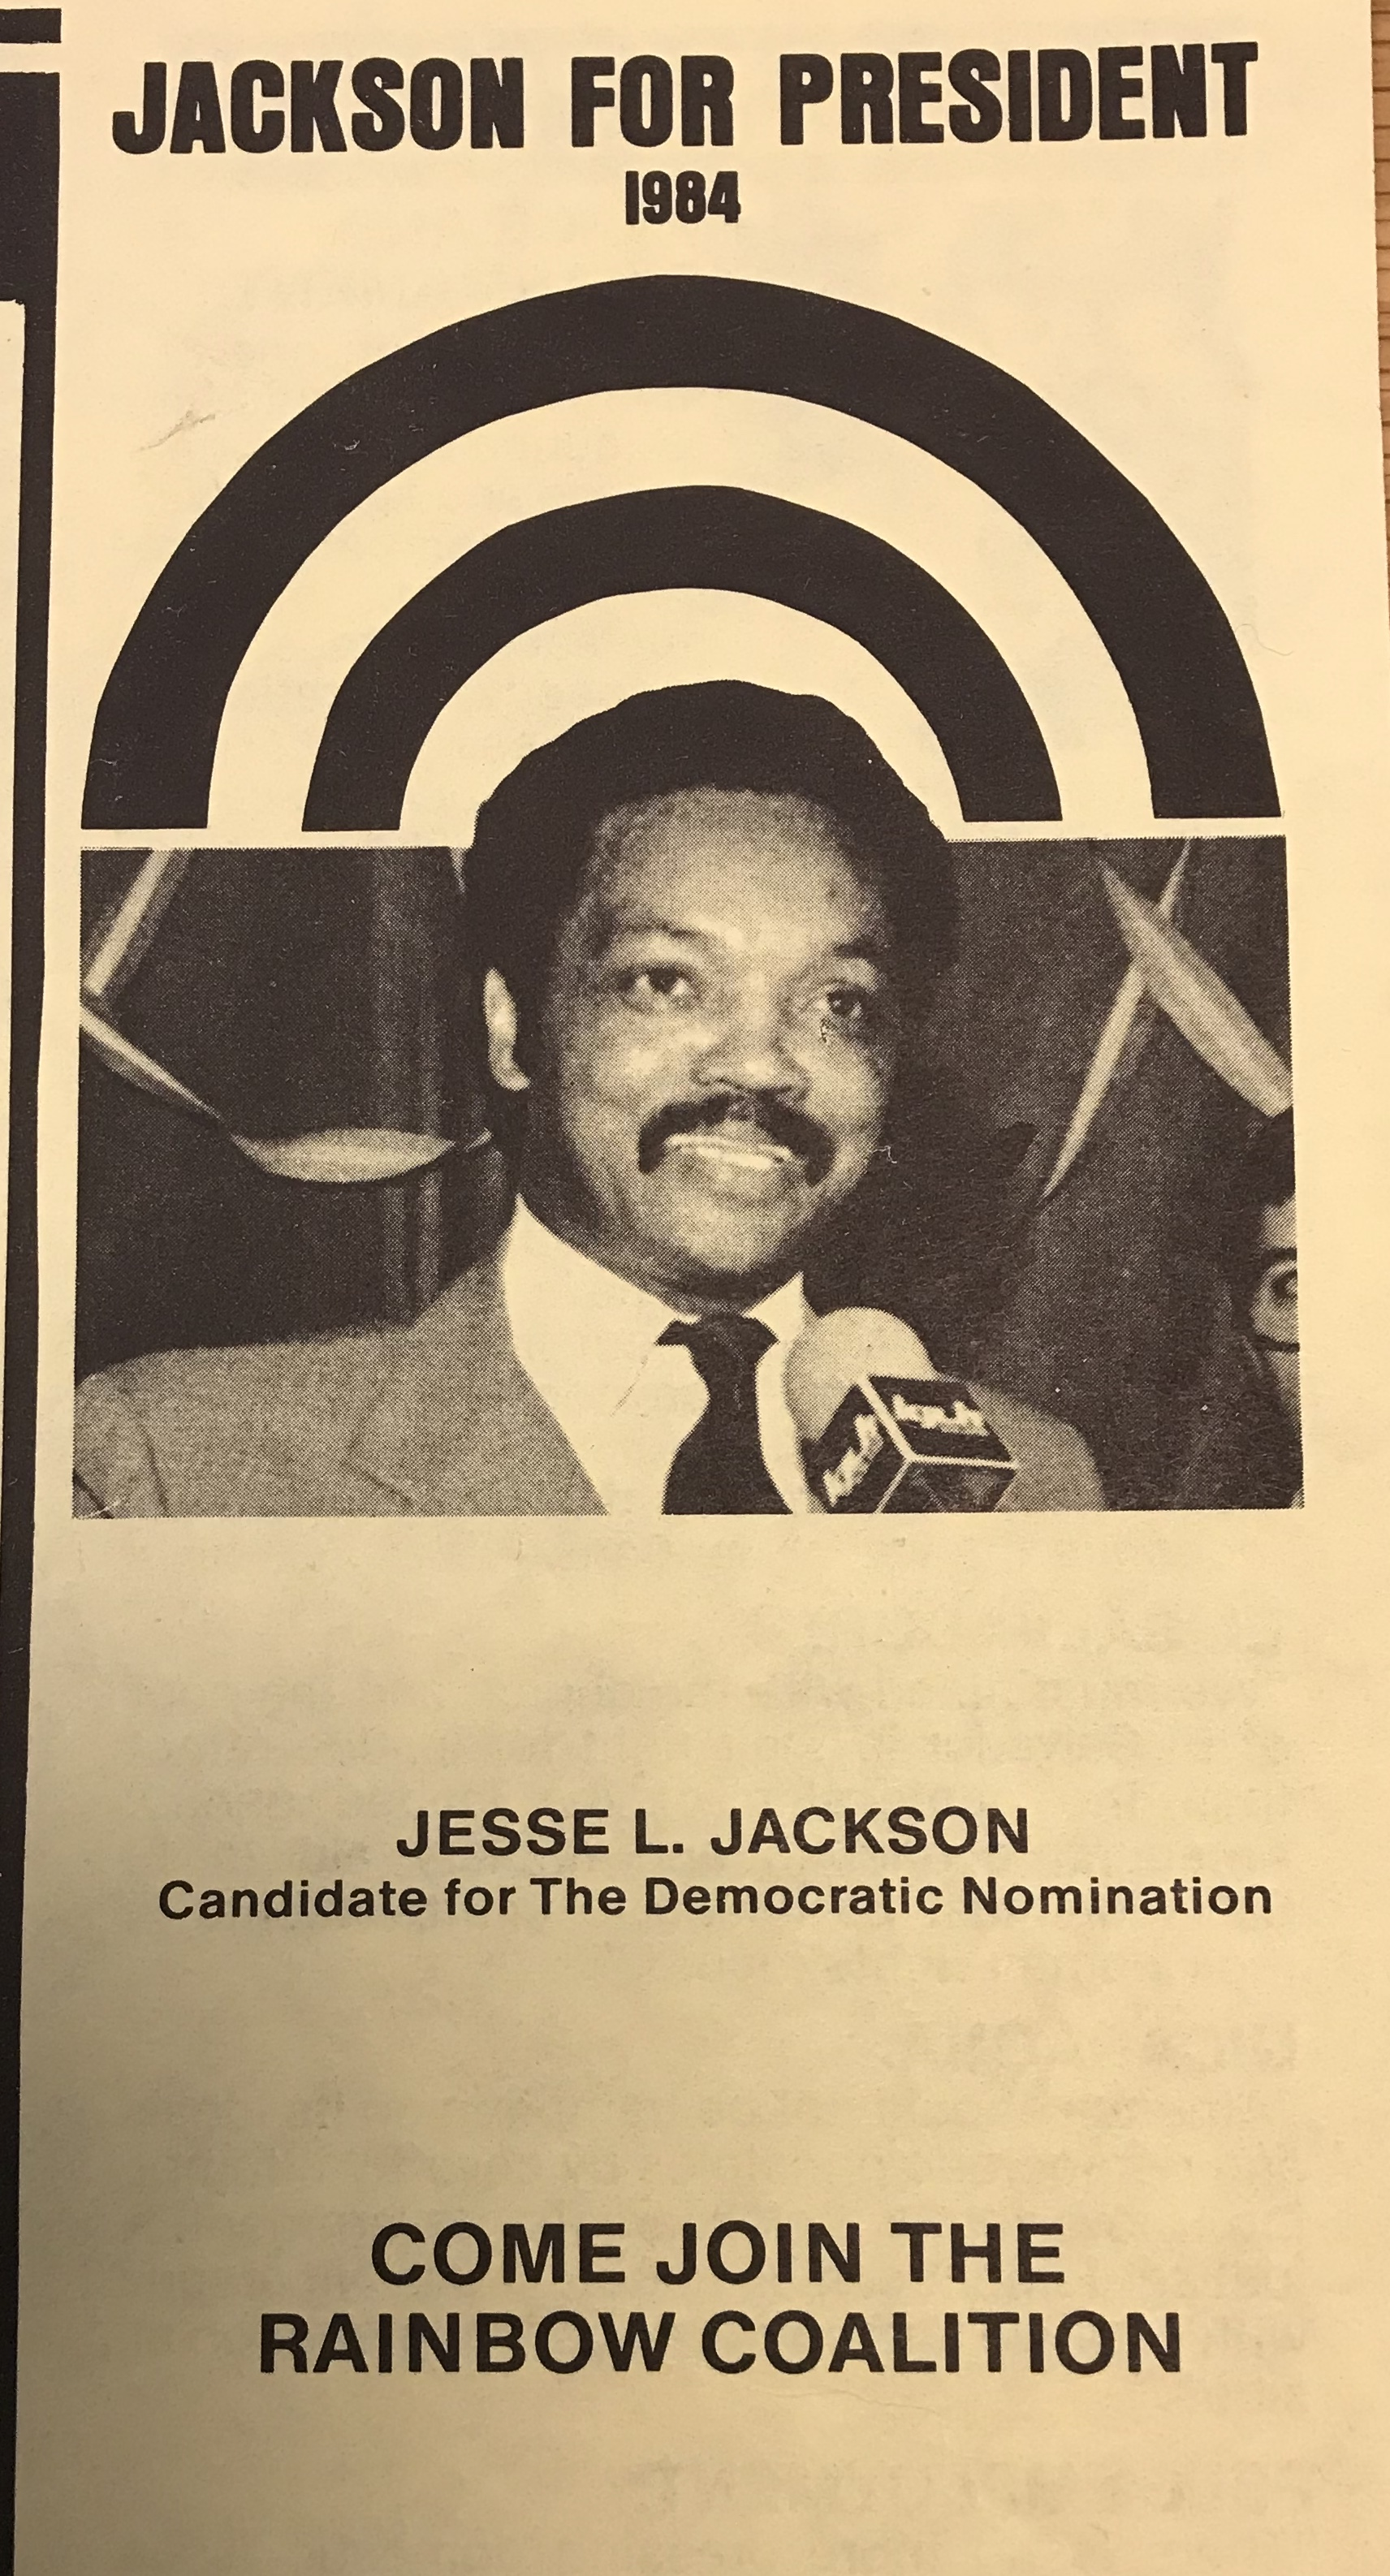 A leaflet showing Jesse Jackson, on yellow paper. There are rainbow bands behind the image.